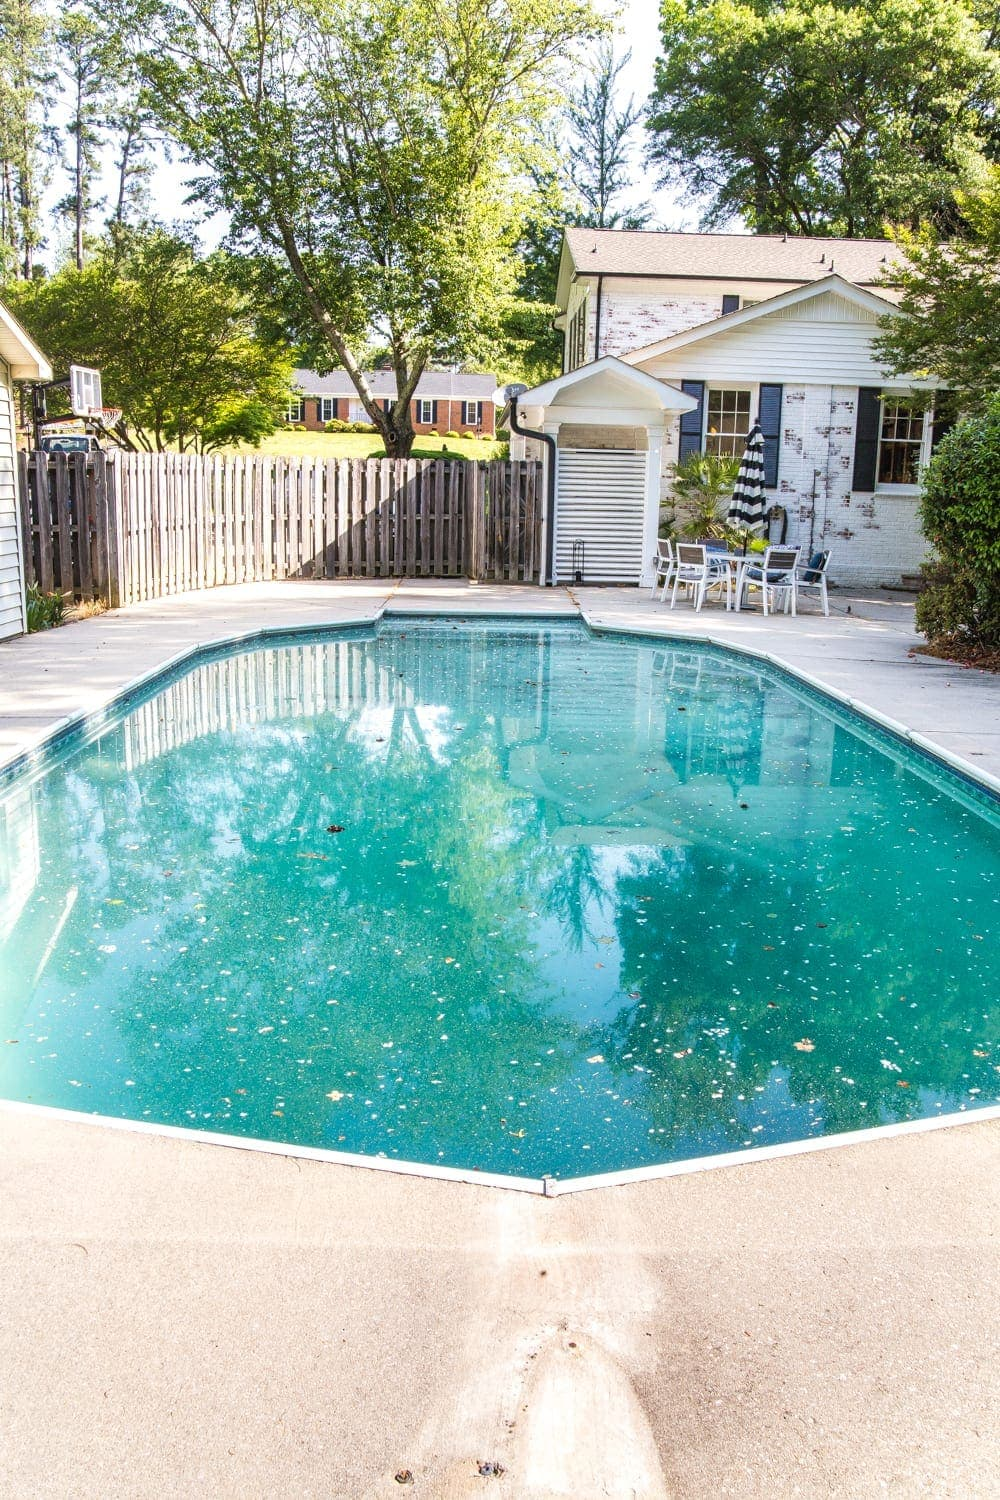 Backyard Before Tour and Pool Makeover Plans | blesserhouse.com - Ideas to improve a shabby backyard and vinyl liner pool